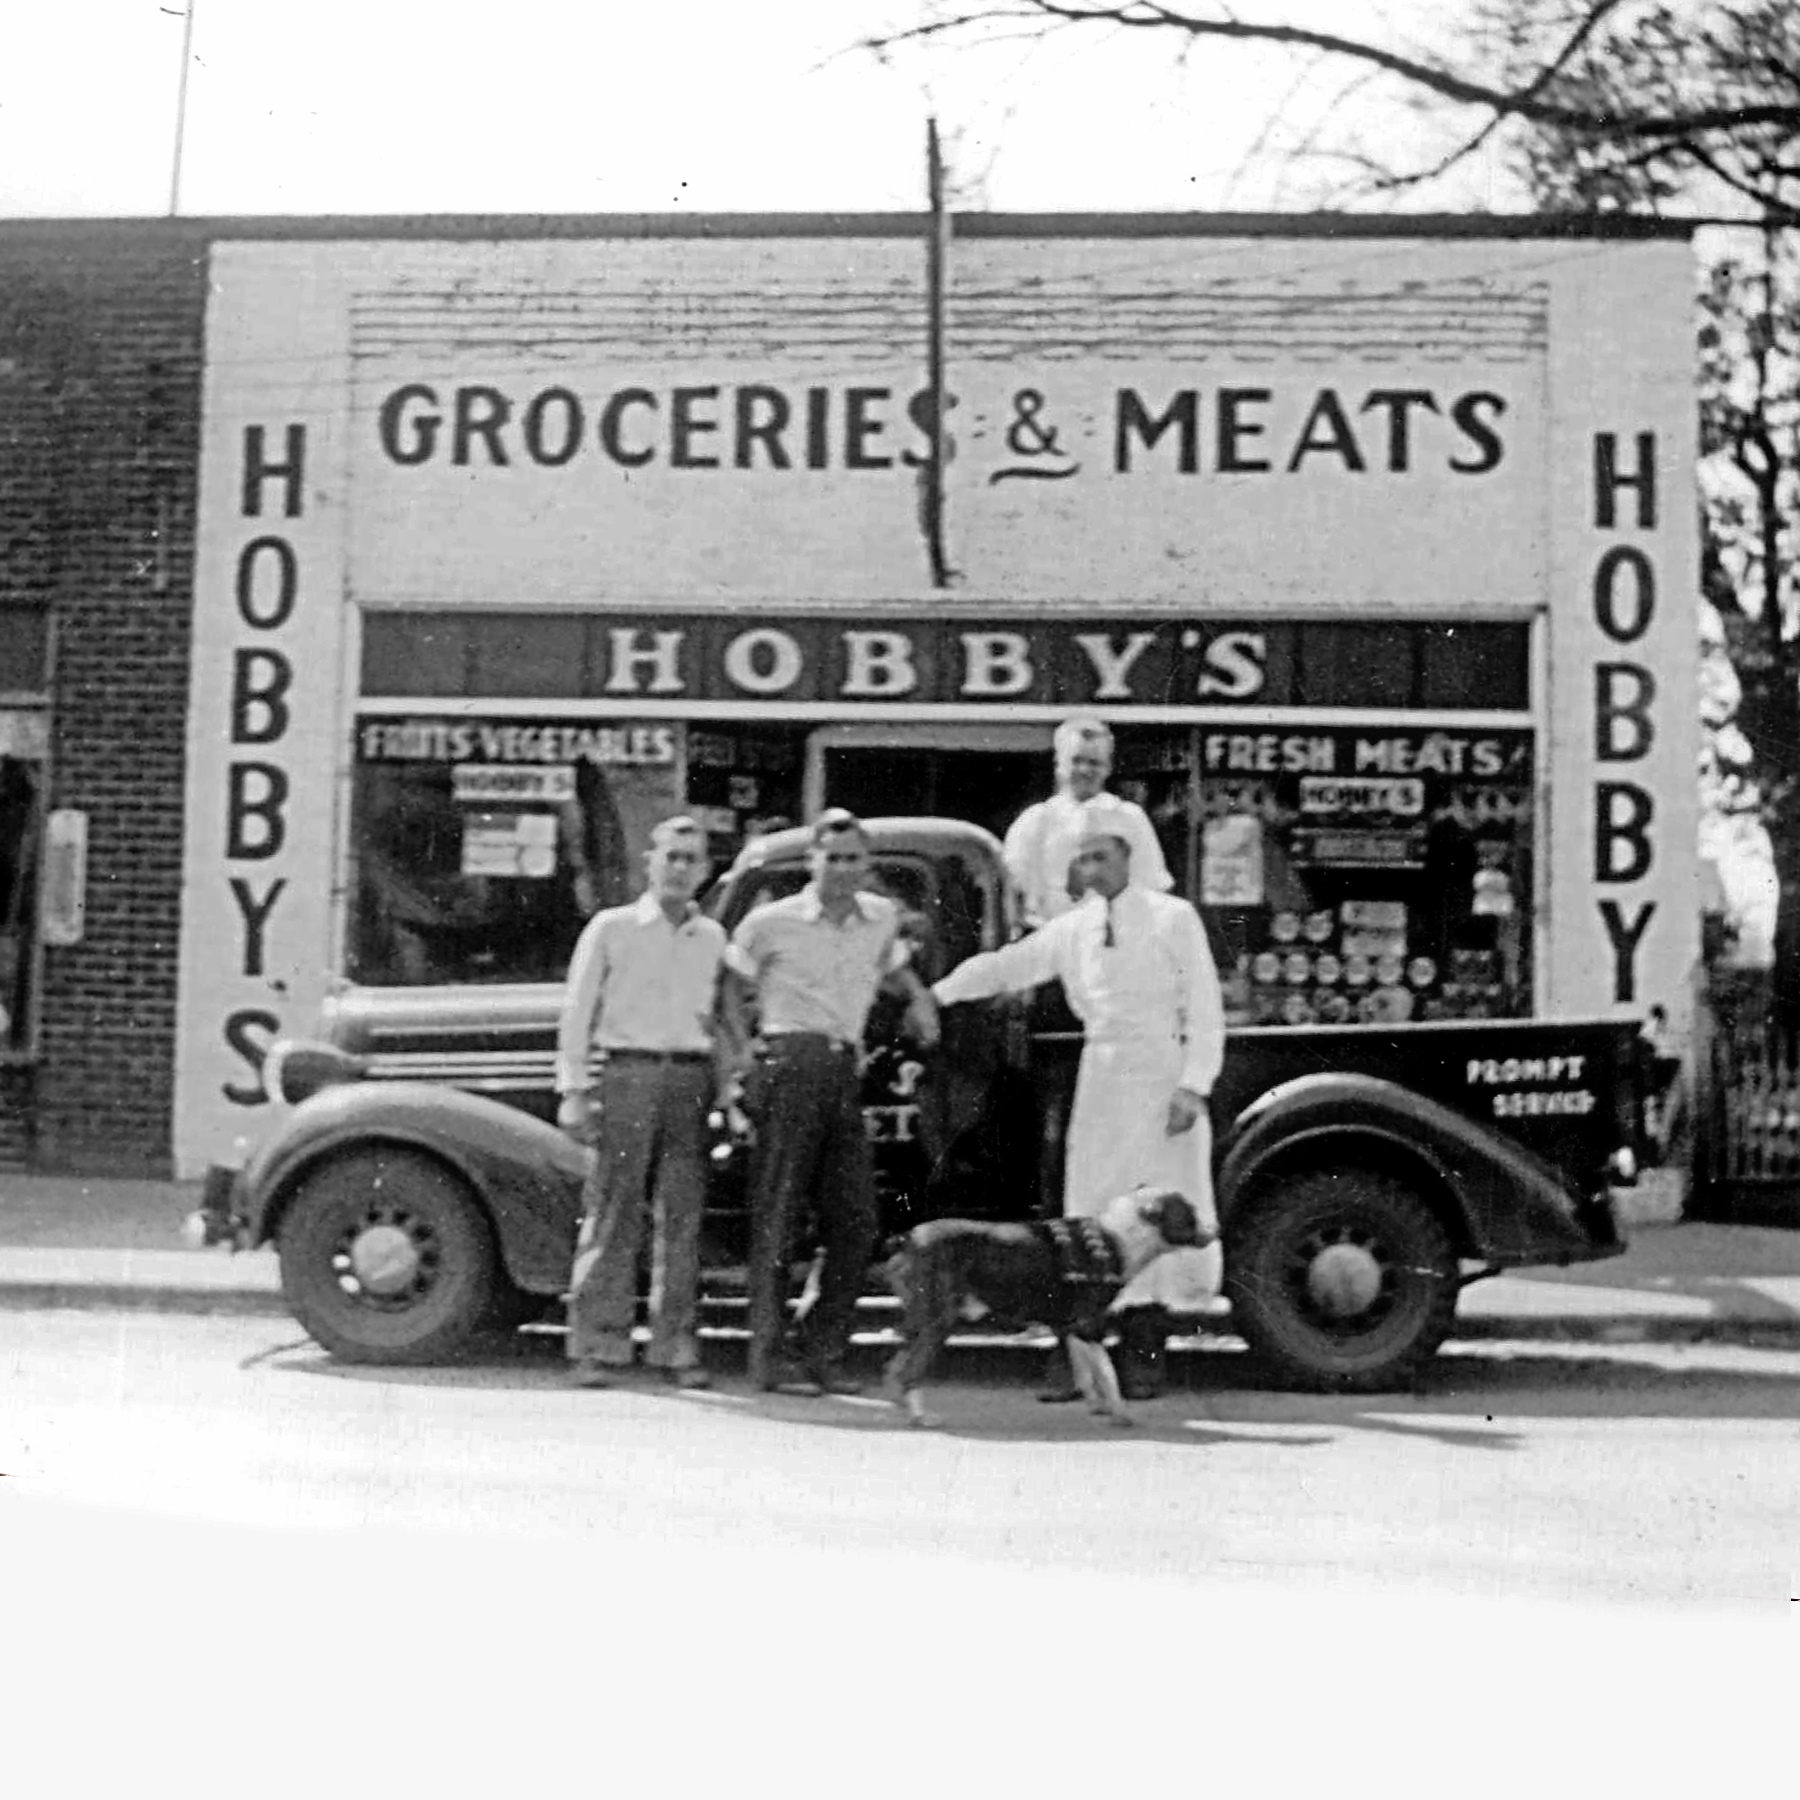 Photo of a group of men standing in front of Hobby's Grocery in Cary, NC